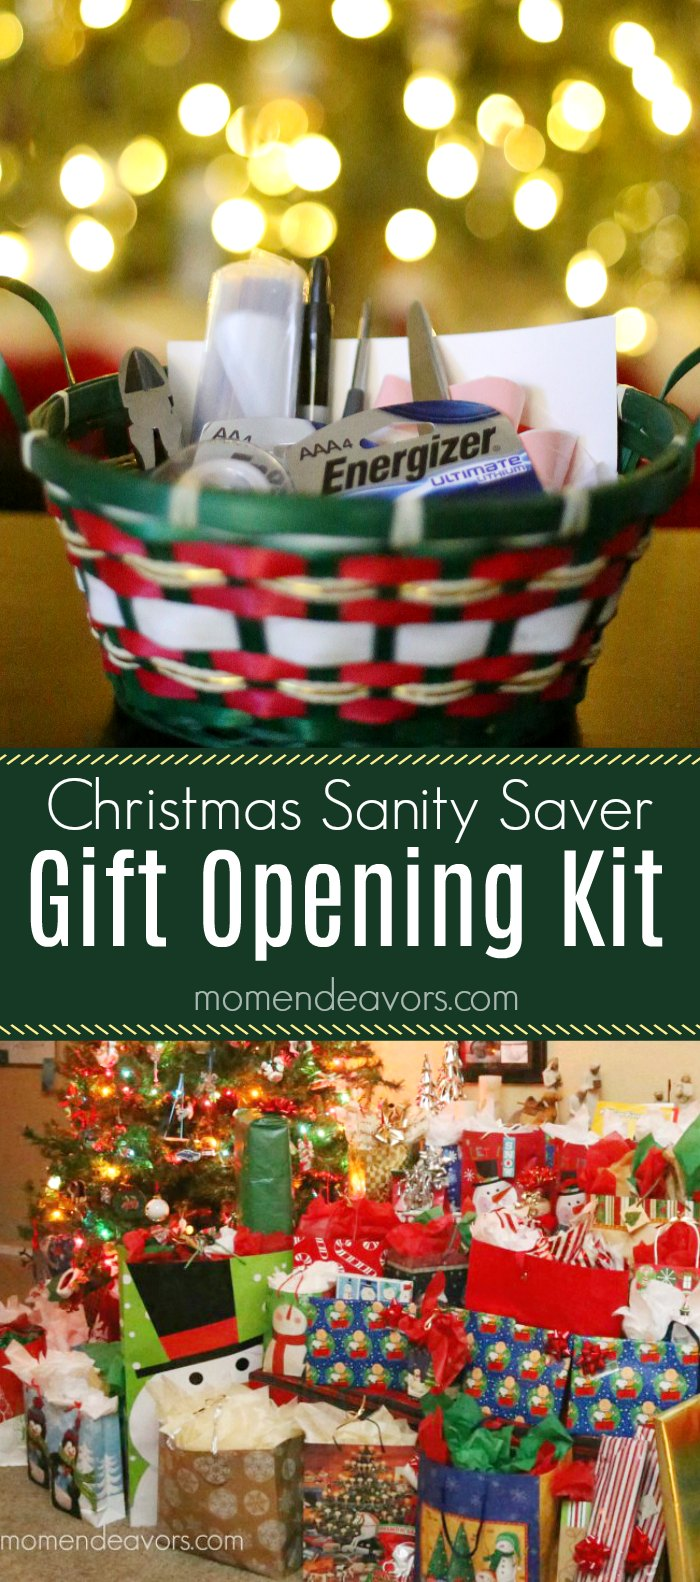 Christmas Sanity Saver Gift Opening Kit